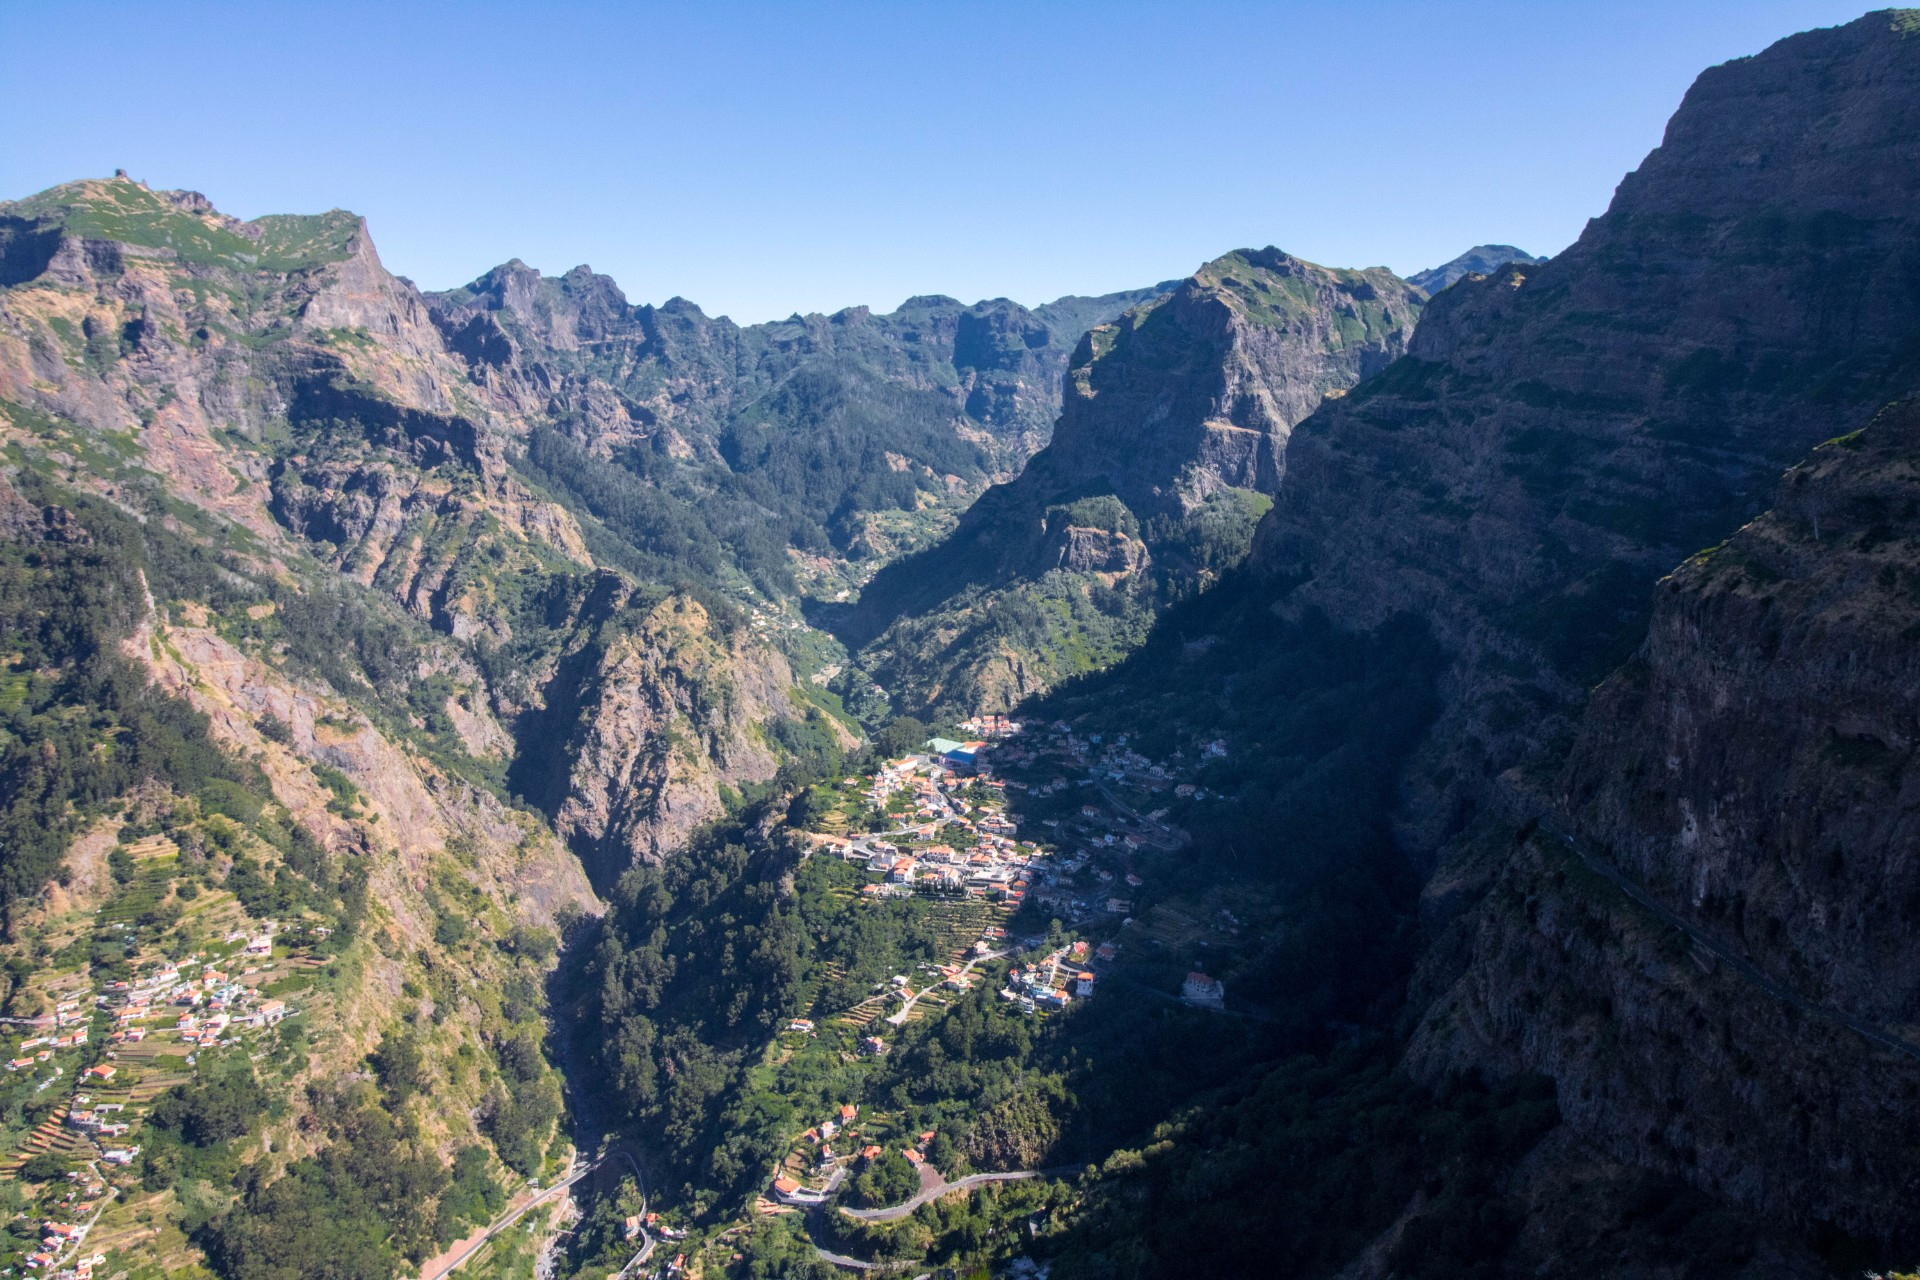 6 reasons why you need to visit Madeira, the Hawaii of Europe/Europe's best kept secret. Madeira is a Portuguese island which boasts amazing weather, gorgeous scenery, lush forests, mountains, lava pools, endless outdoor activities, and incredible local food. Click through to read more...